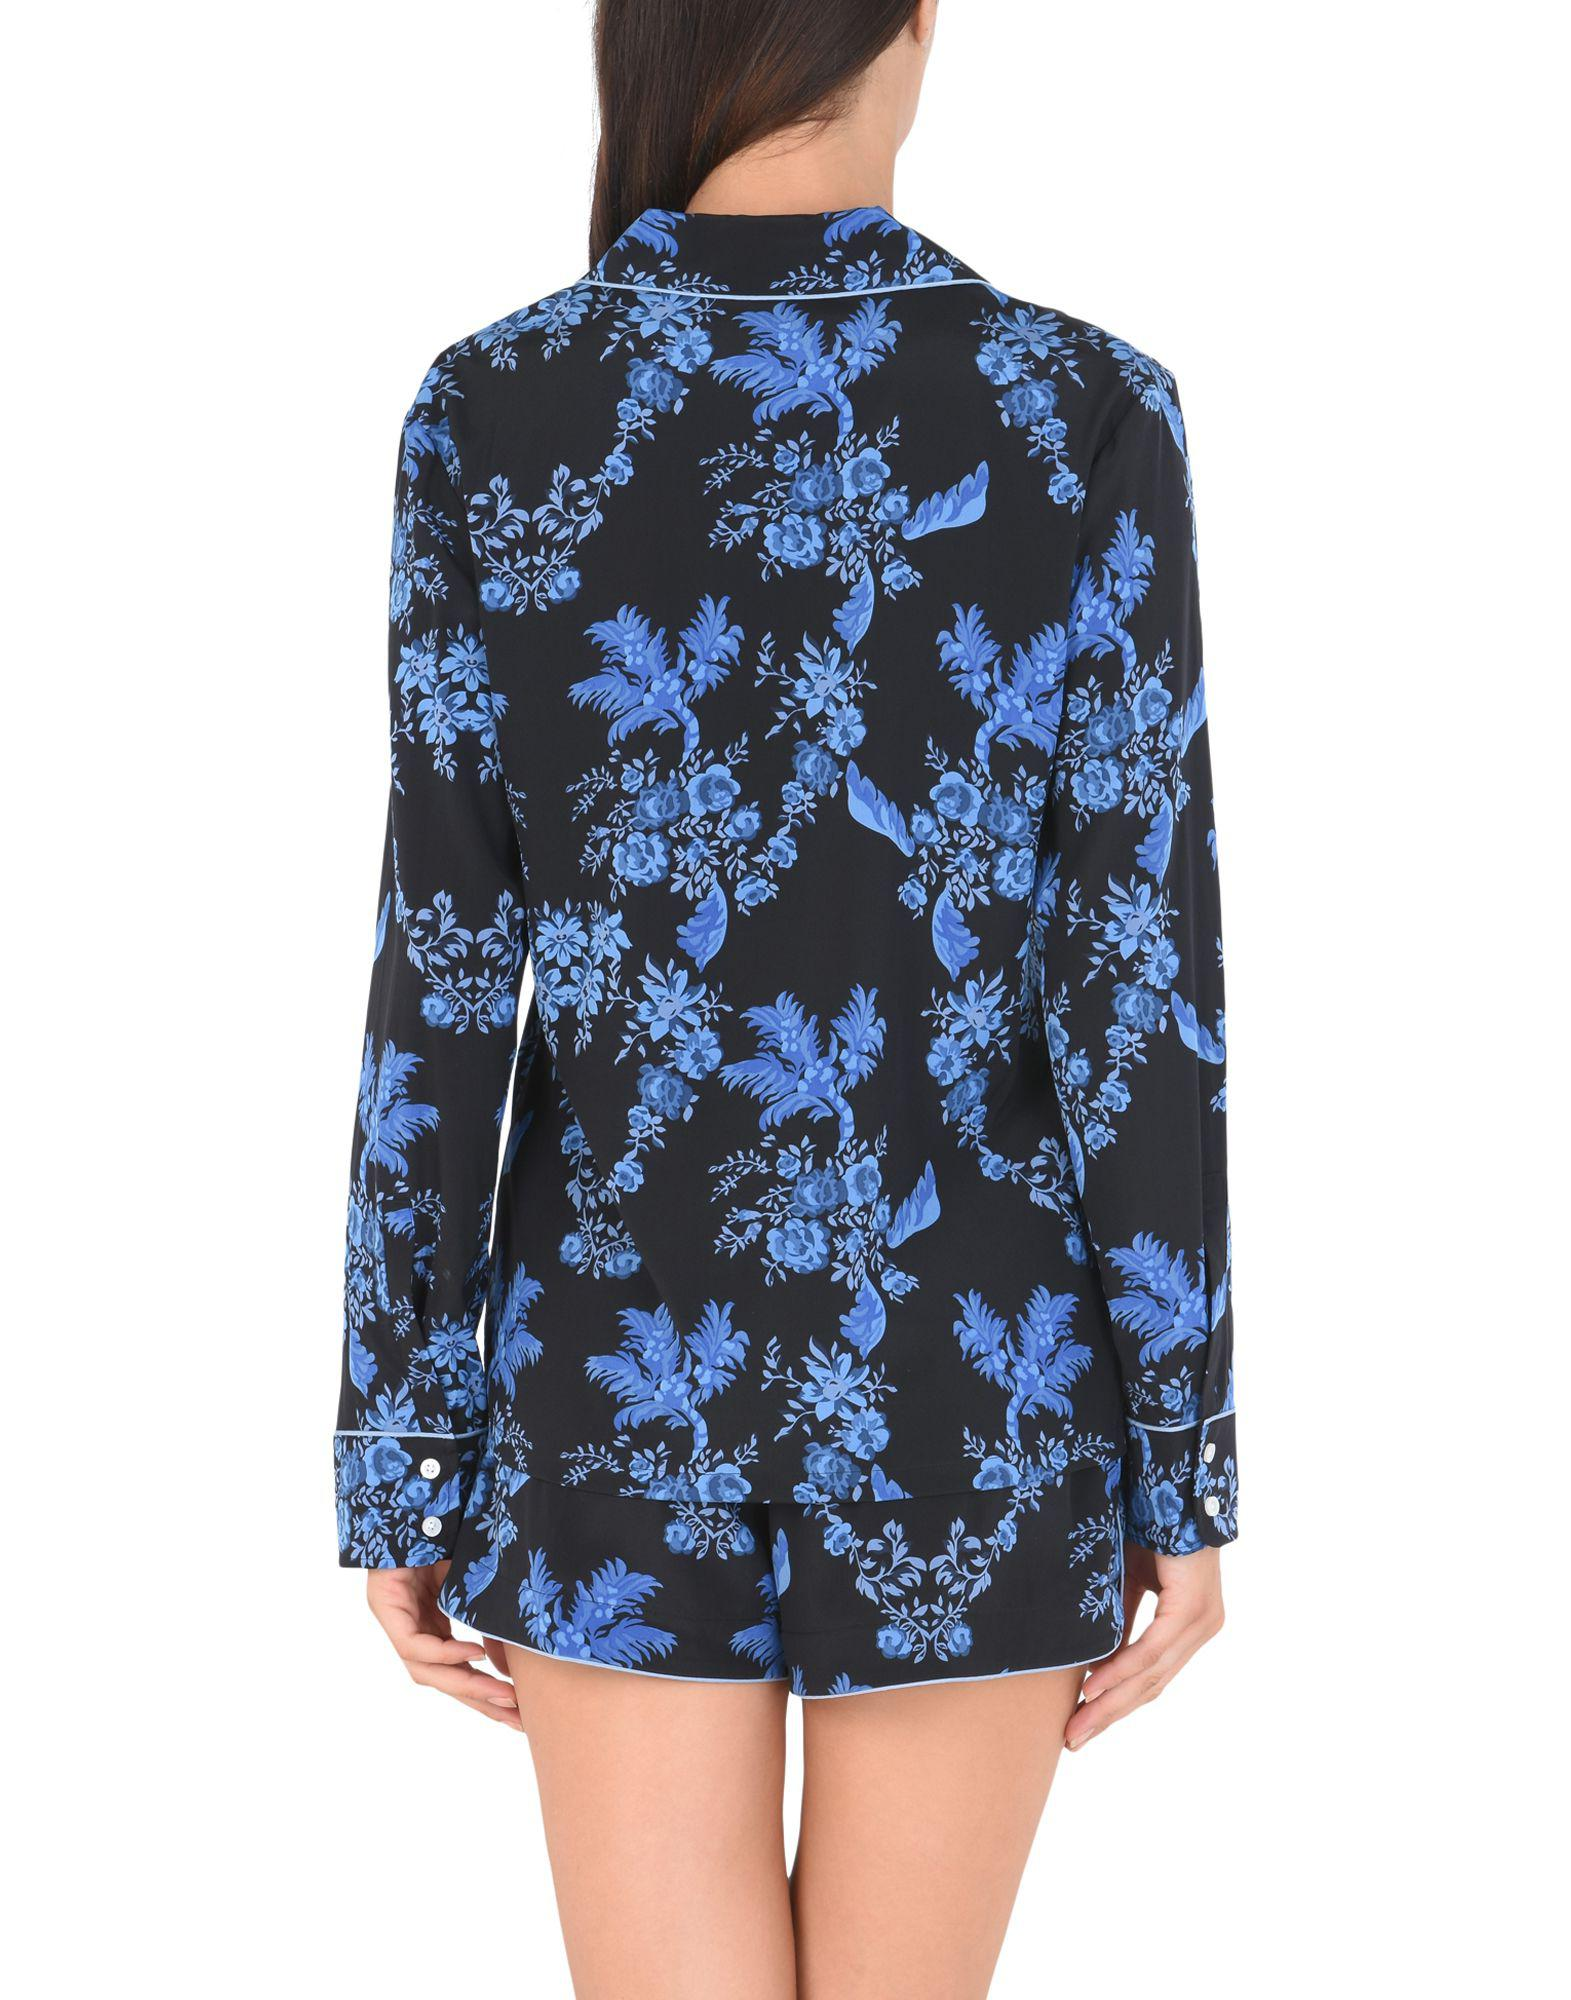 Lyst - Stella McCartney Poppy Snoozing Printed Stretch-silk Crepe De Chine  Pajama Set in Blue - Save 44% 9072cf4e0